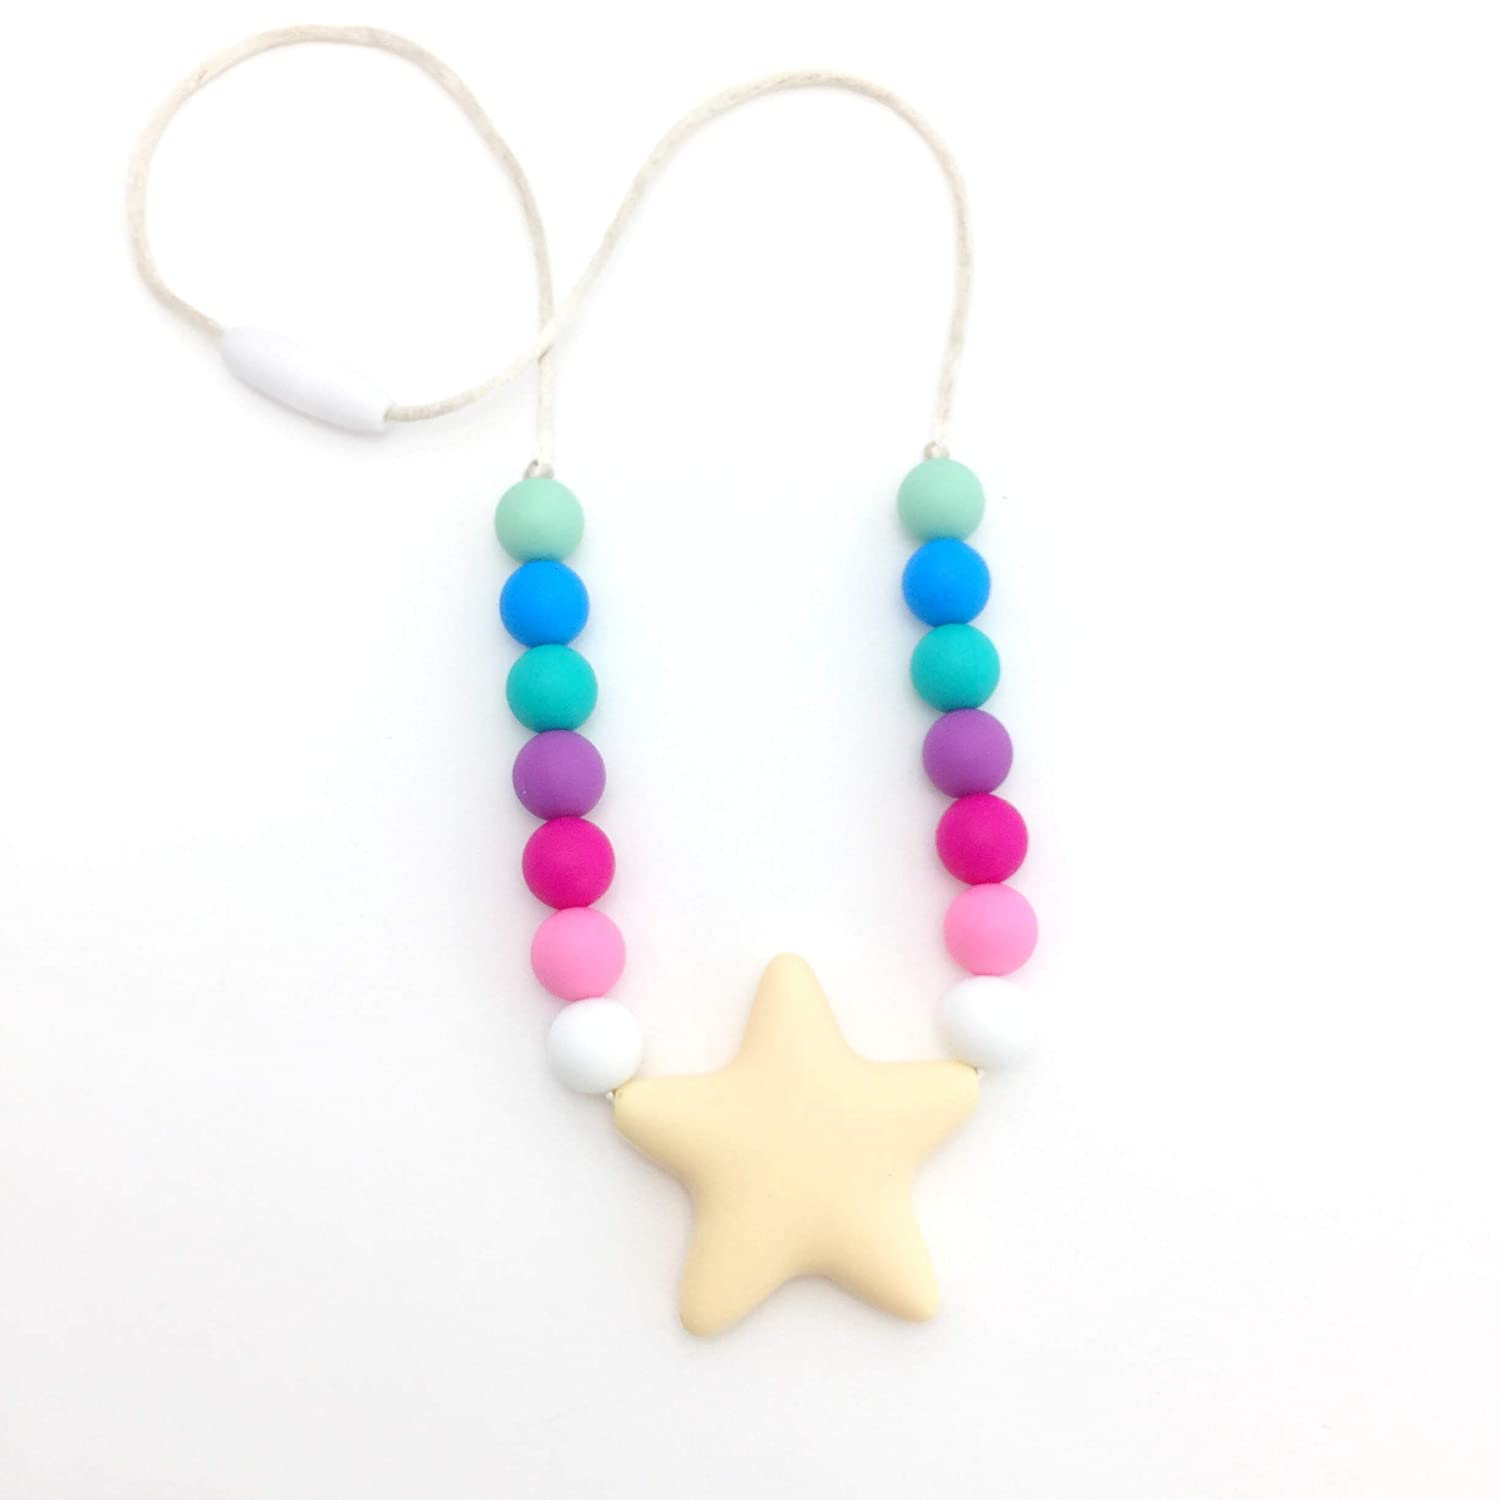 Chewy Jewelry for Sensory Kids with Autism or Special Needs Rainbow Sensory Oral Motor Chew Necklace Bite Beads Necklace. Chewlery for Teething